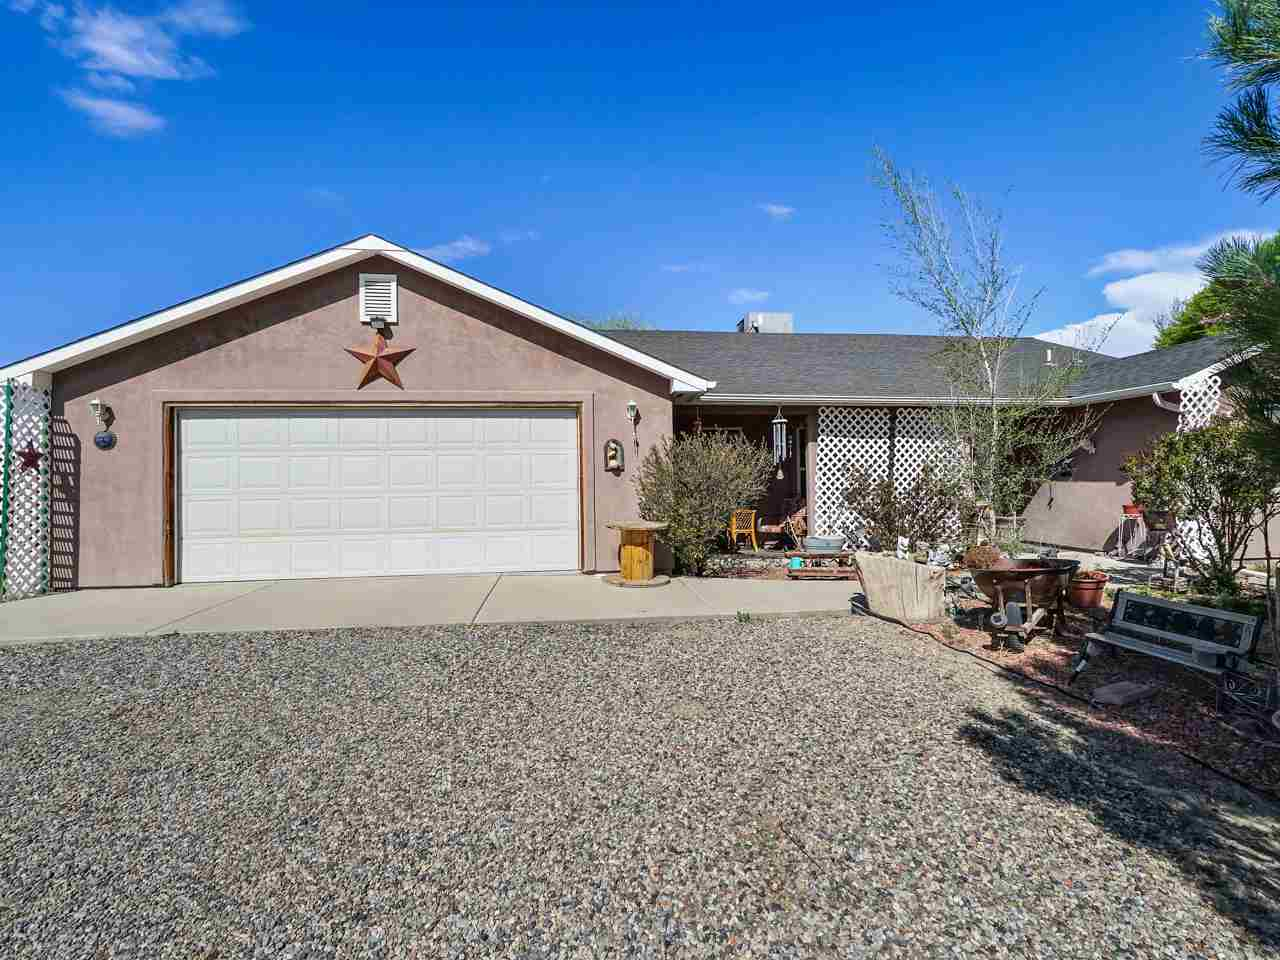 1315 1/2 M 1/2 Road Property Photo - Loma, CO real estate listing